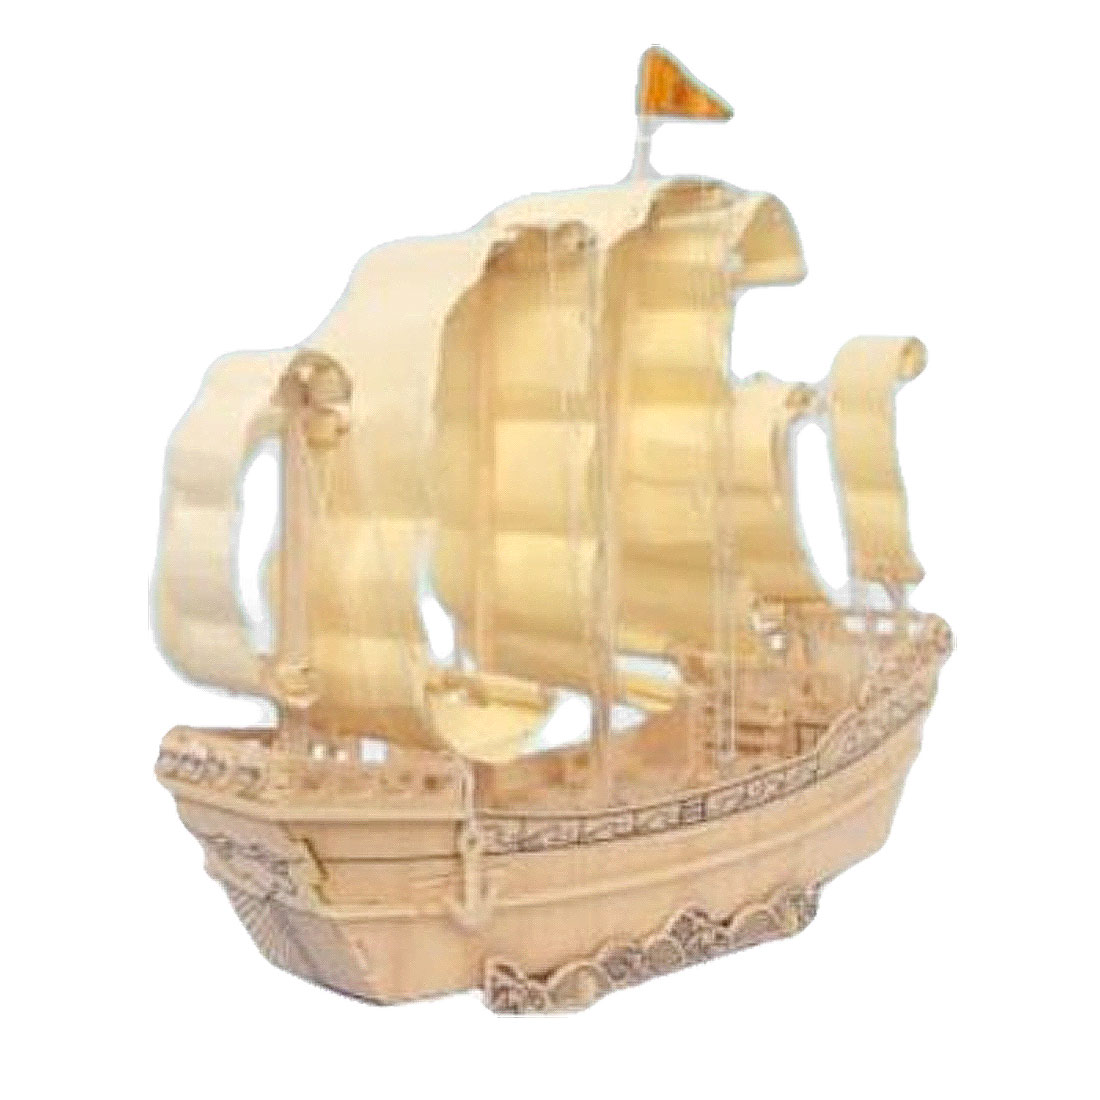 DIY Wooden Sailboat in Ming Dynasty Model 3D Puzzle Educational Toy